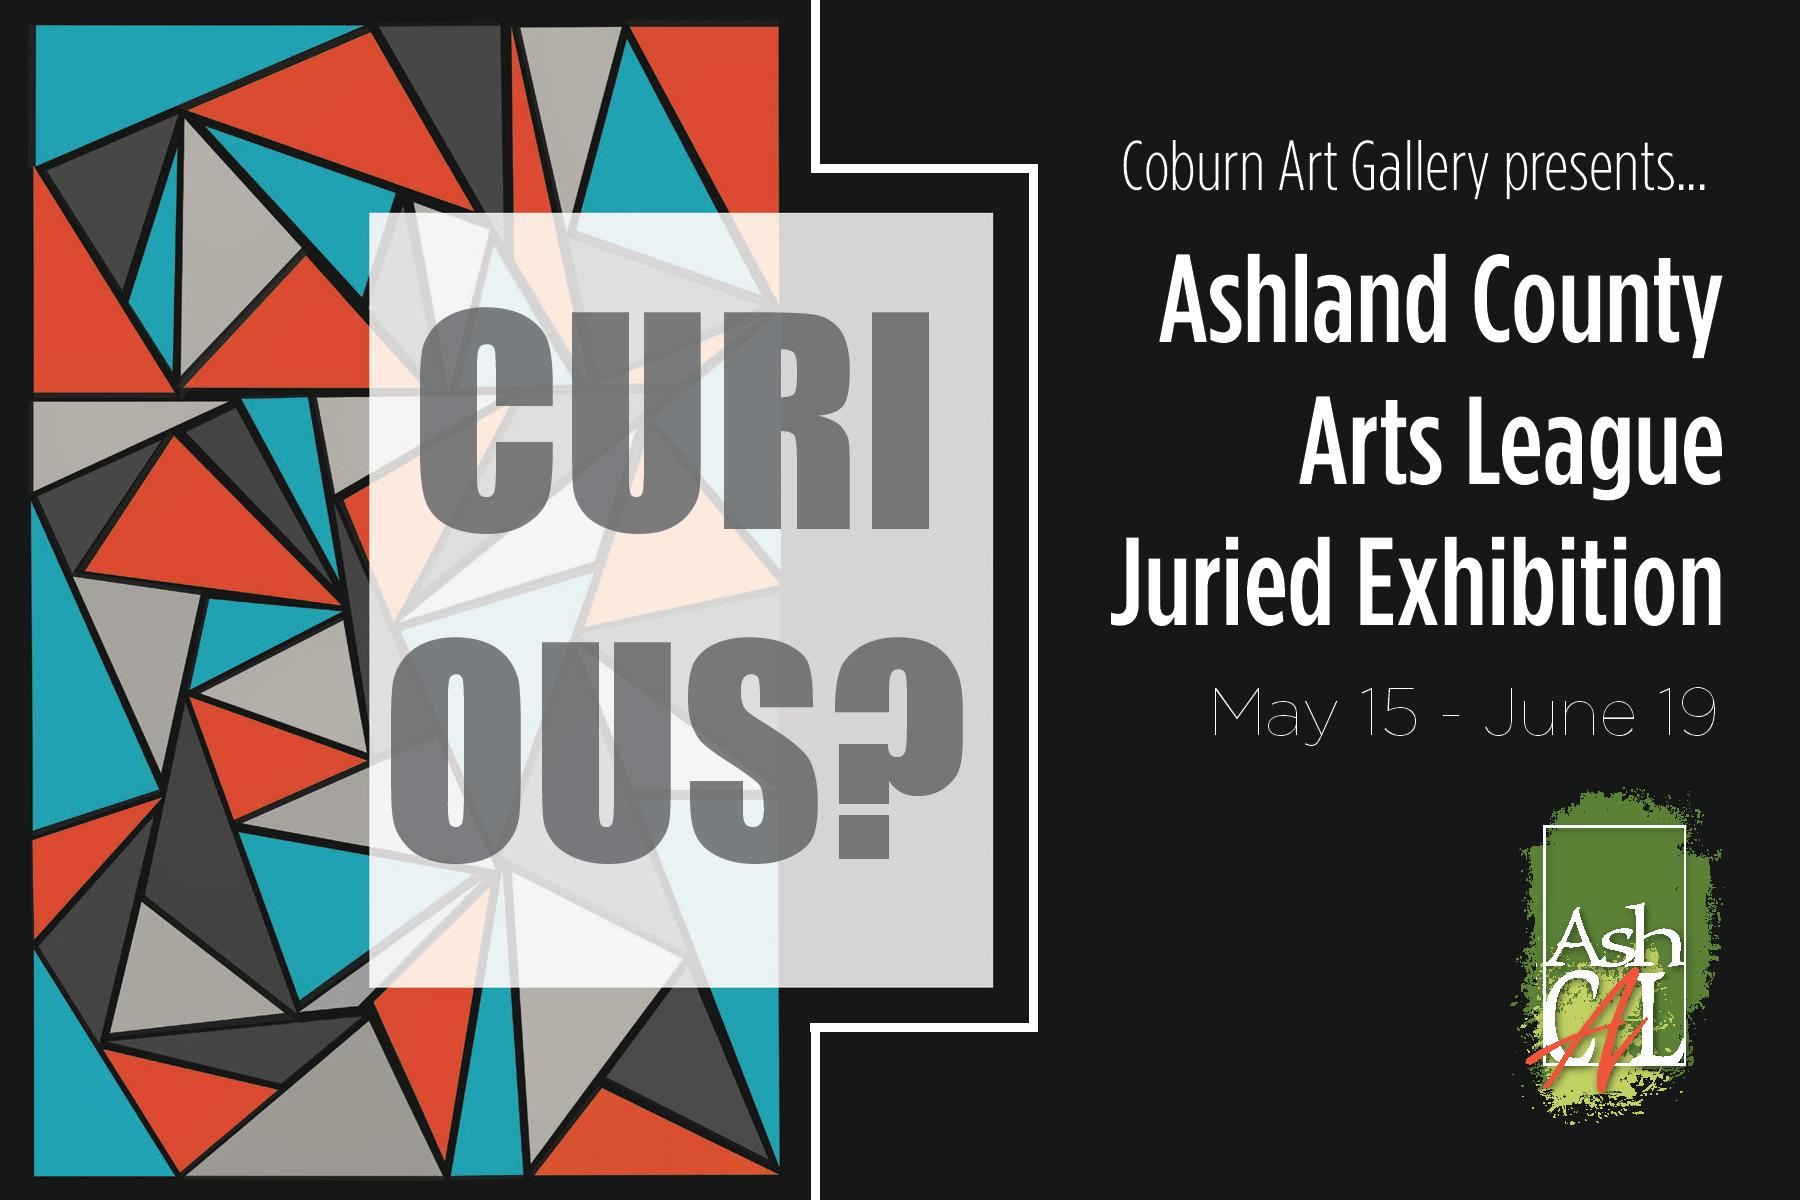 Ashland County Arts League